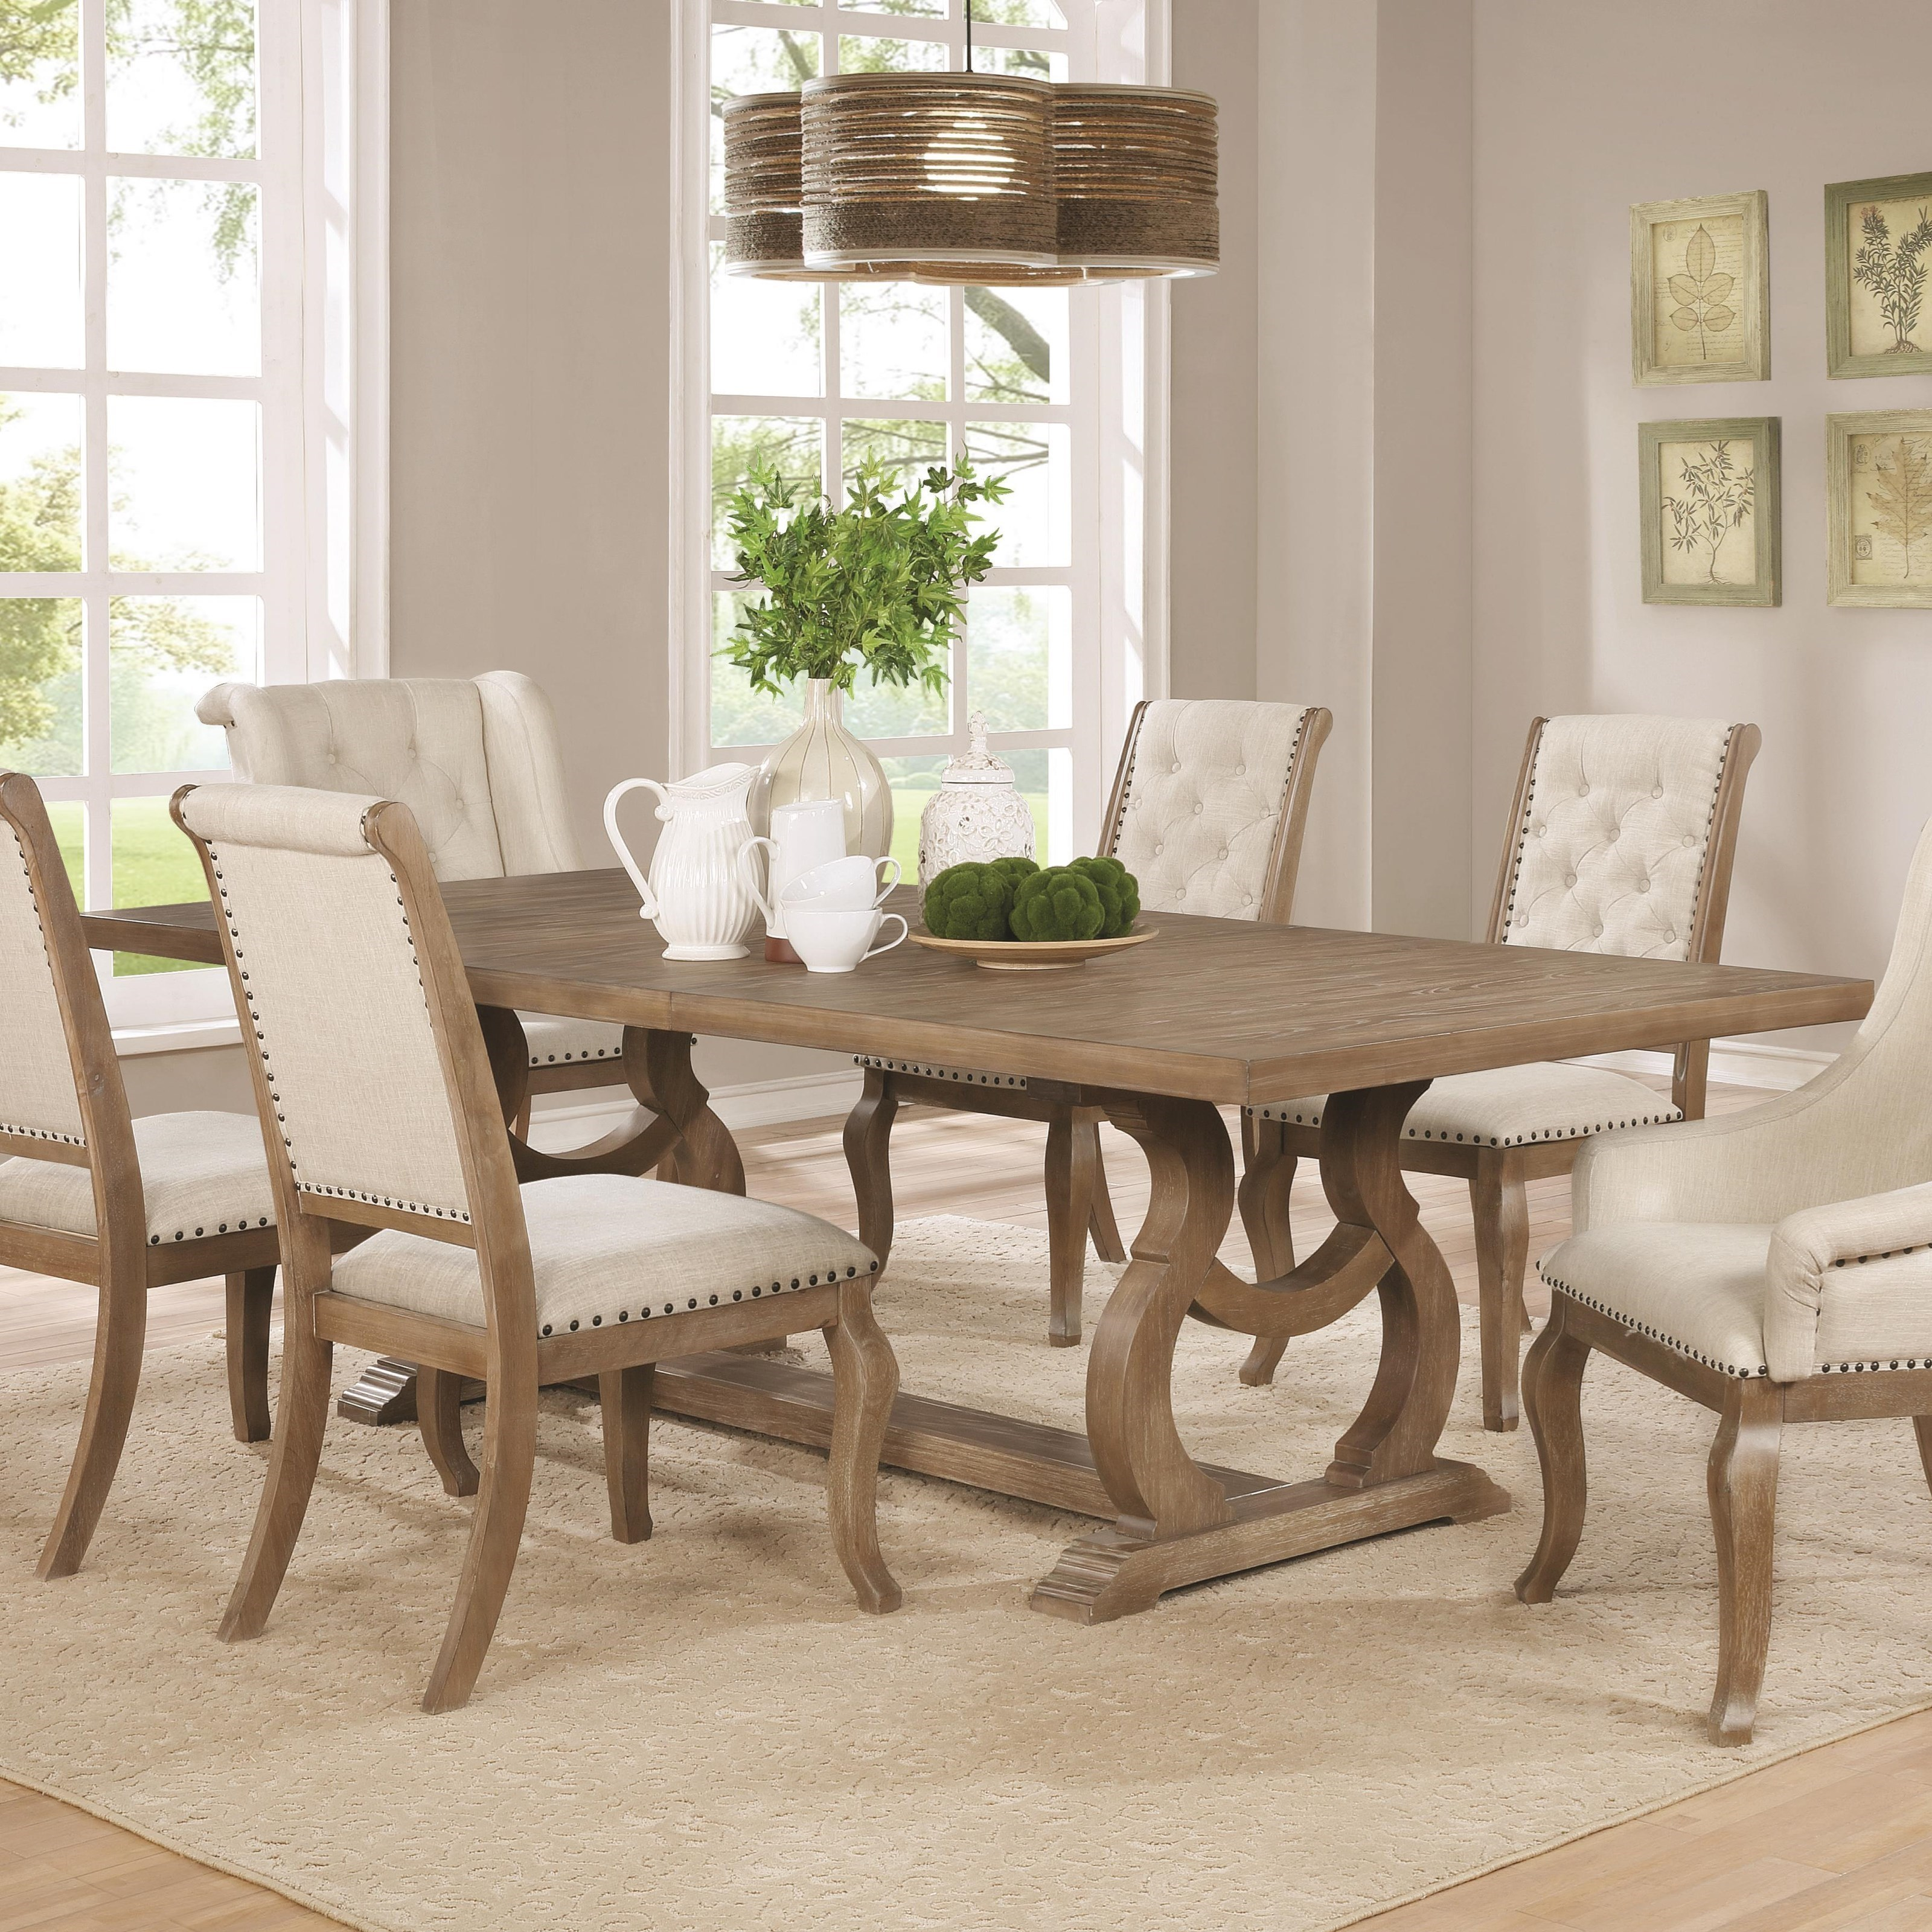 Scott Living Glen Cove Traditional Dining Table With Trestle   Coaster Fine  Furniture